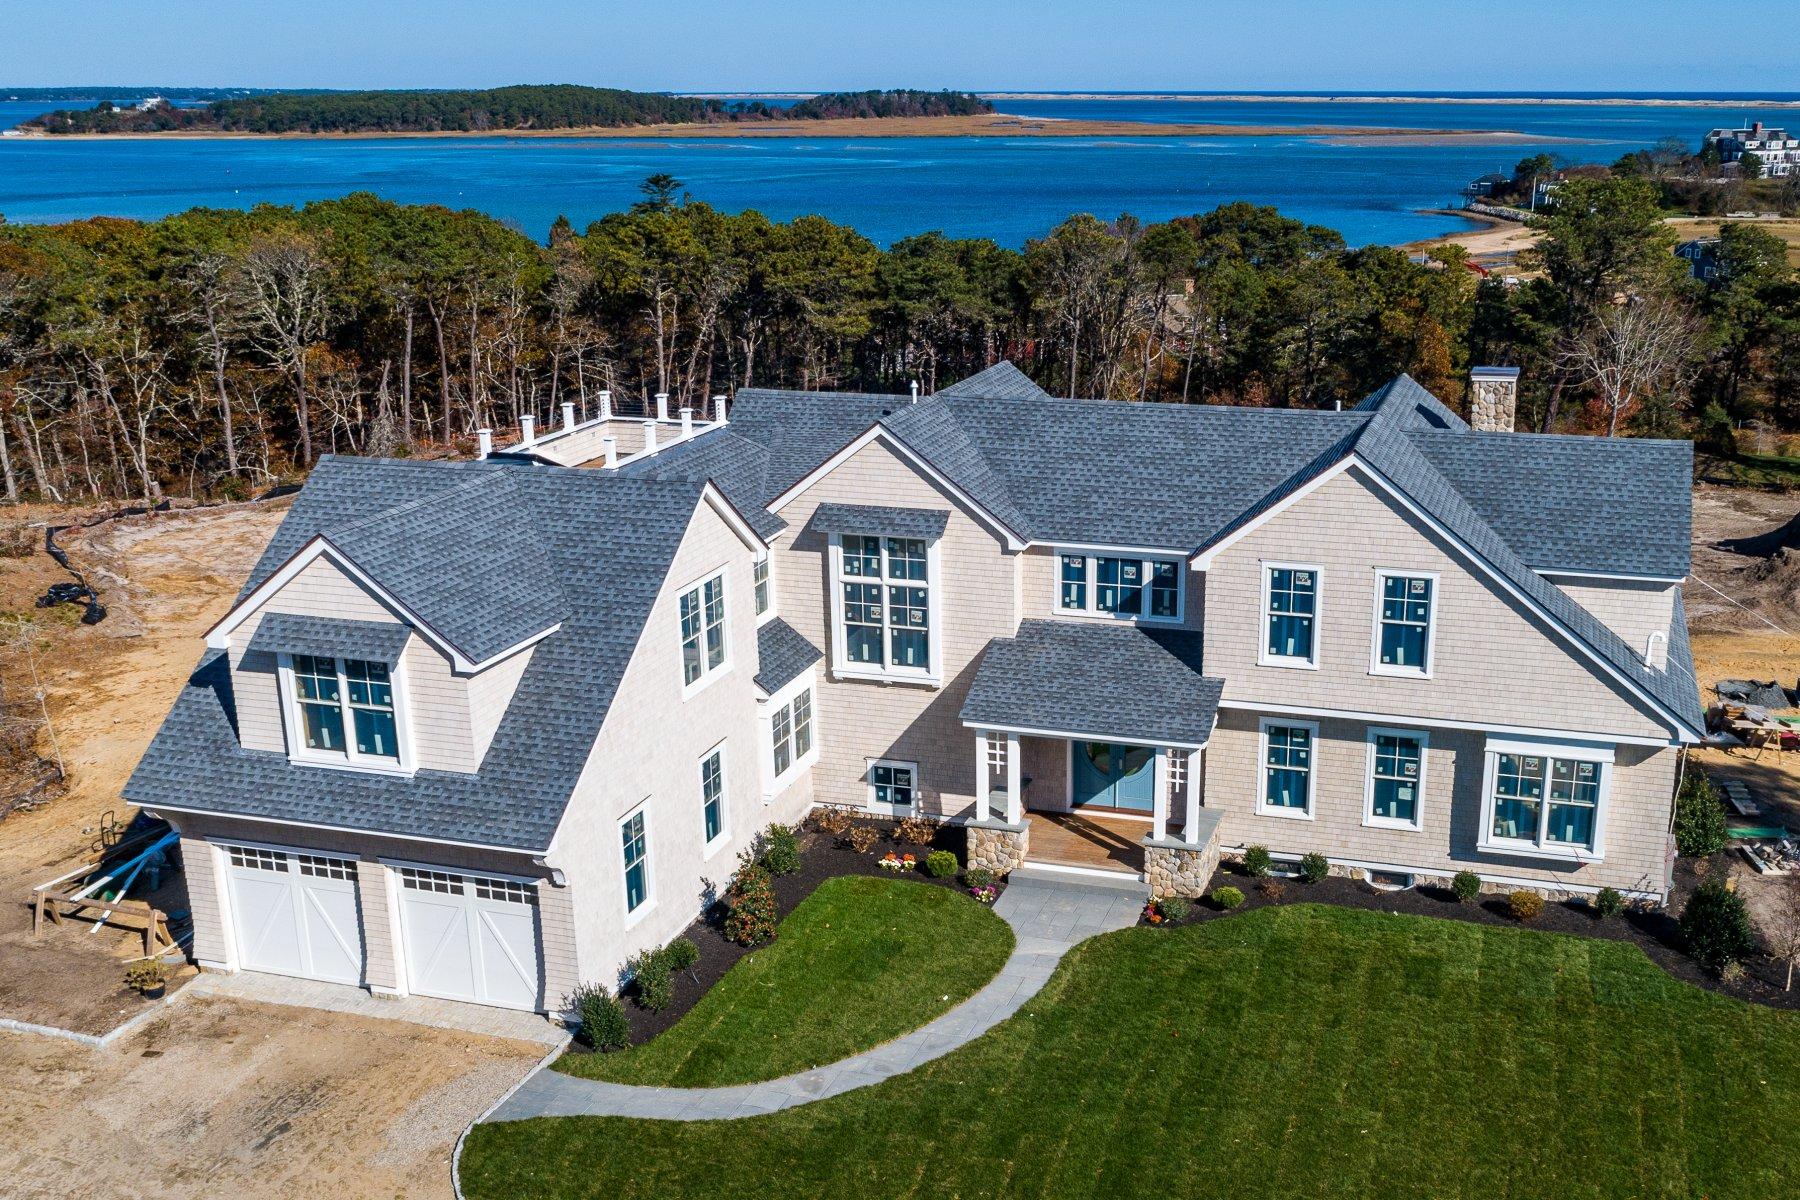 Single Family Homes for Sale at Lot 2 Whidah Road, Chatham, MA 168 Whidah Road Chatham, Massachusetts 02633 United States